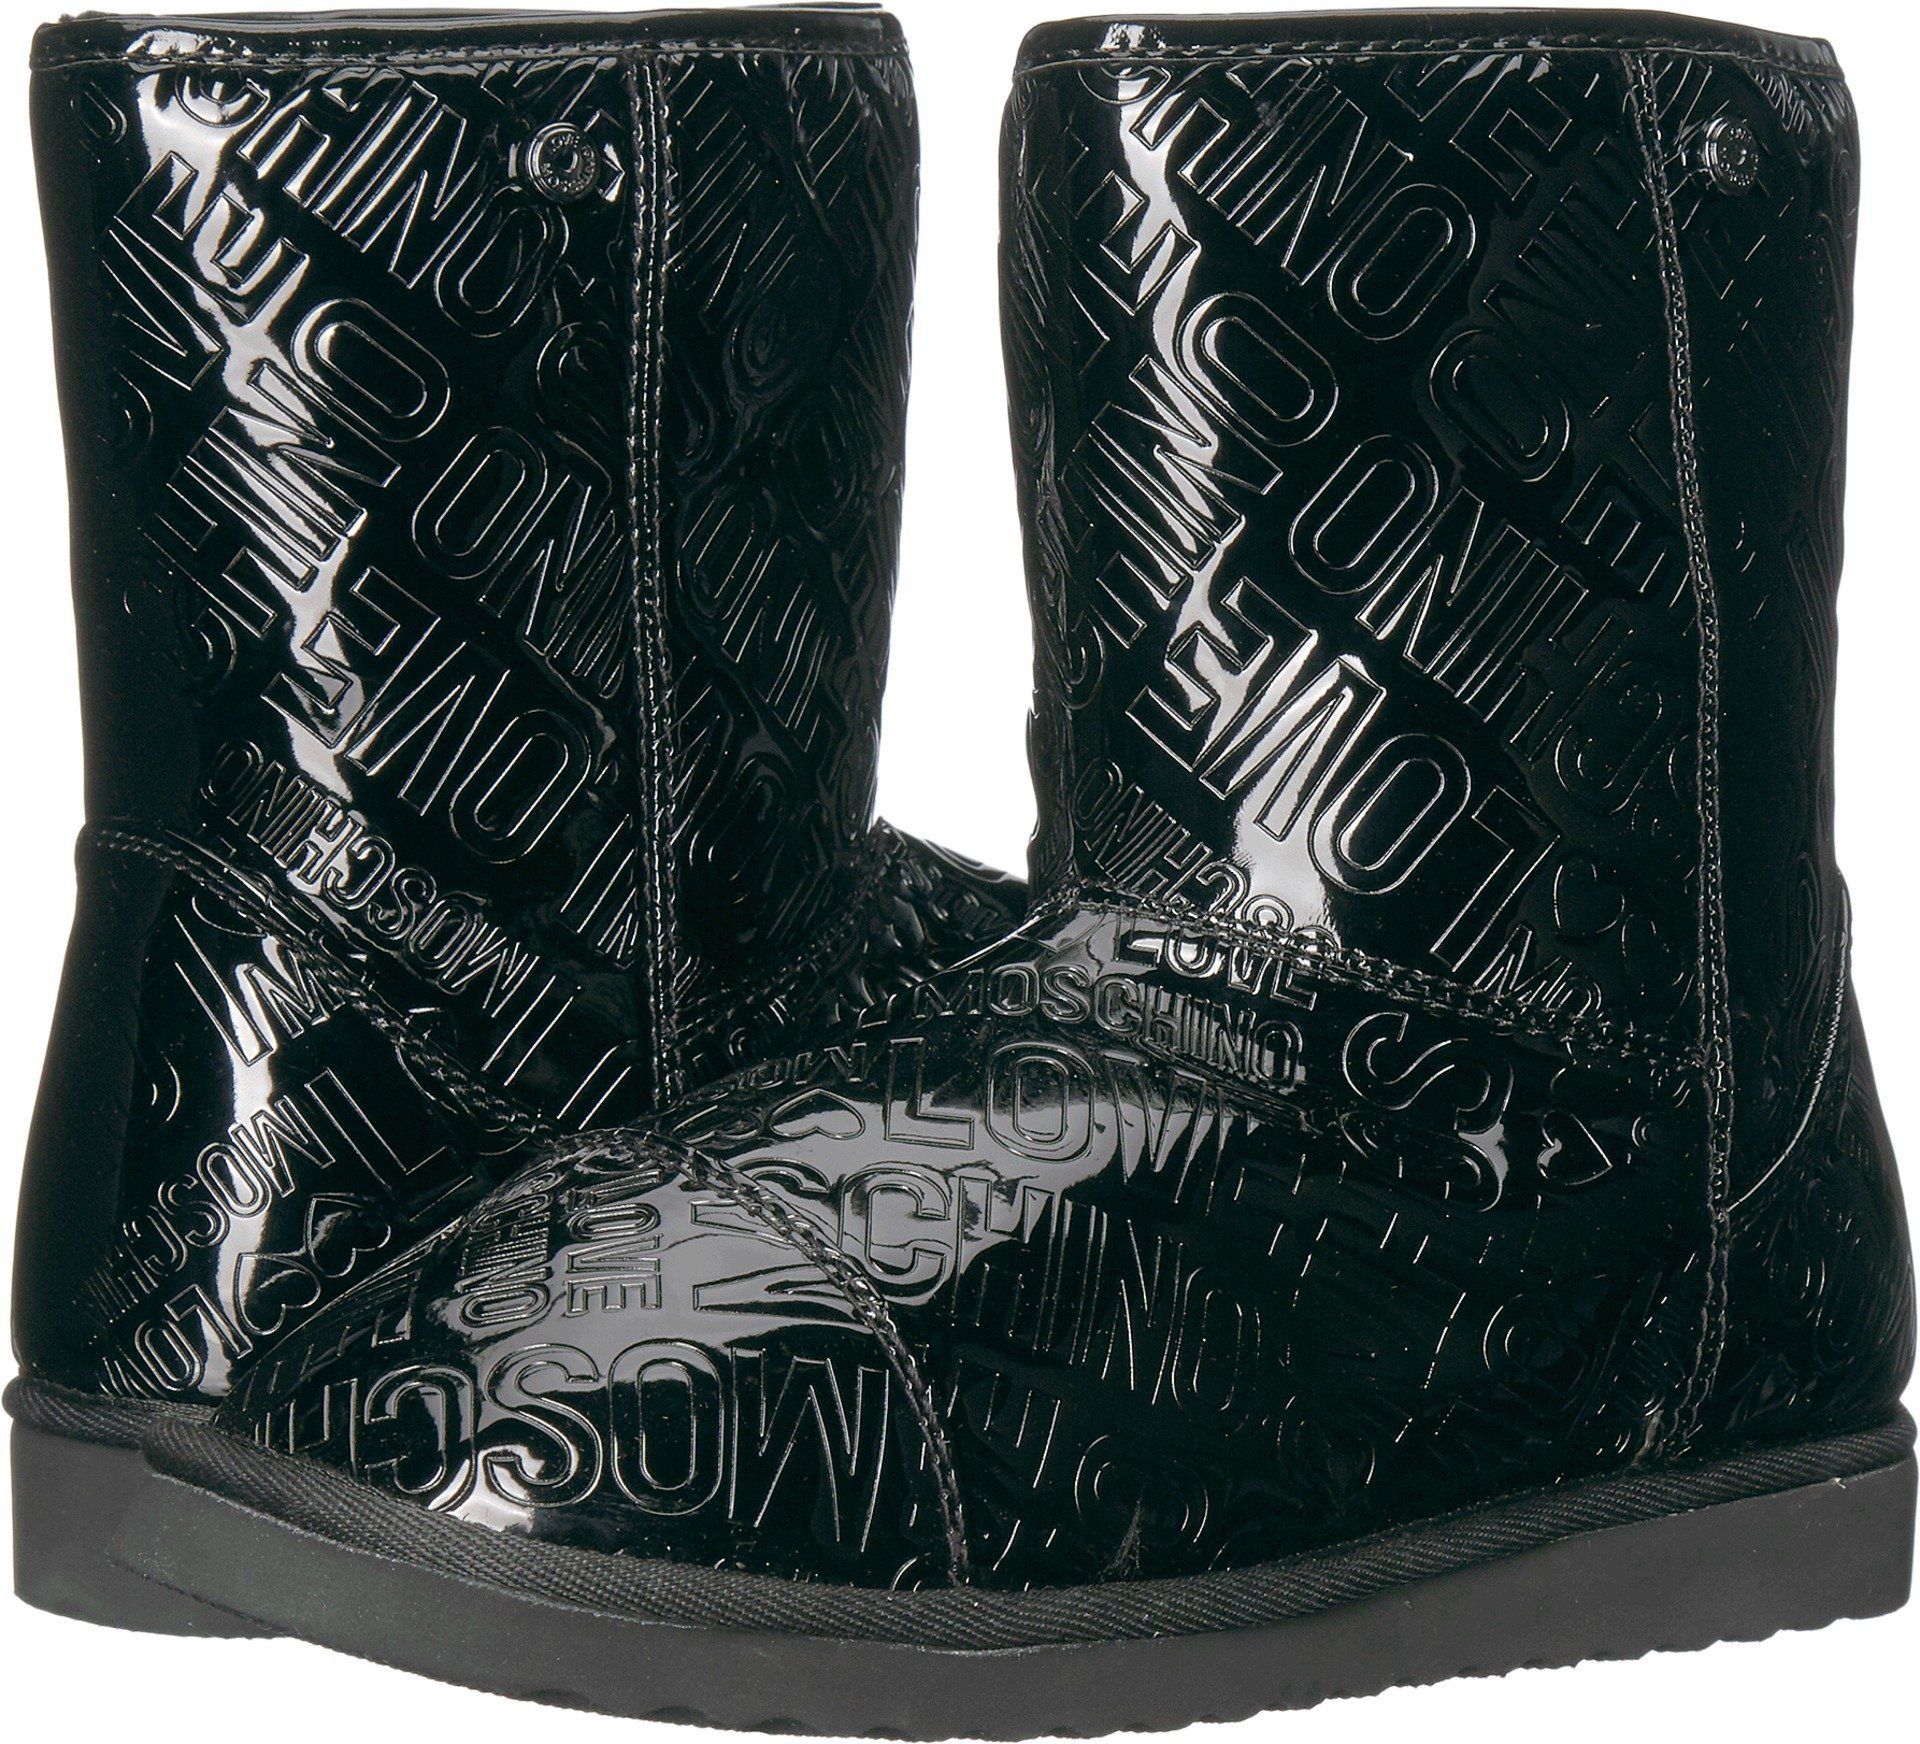 Love Moschino Women's Ankle Boots Black 37 M EU